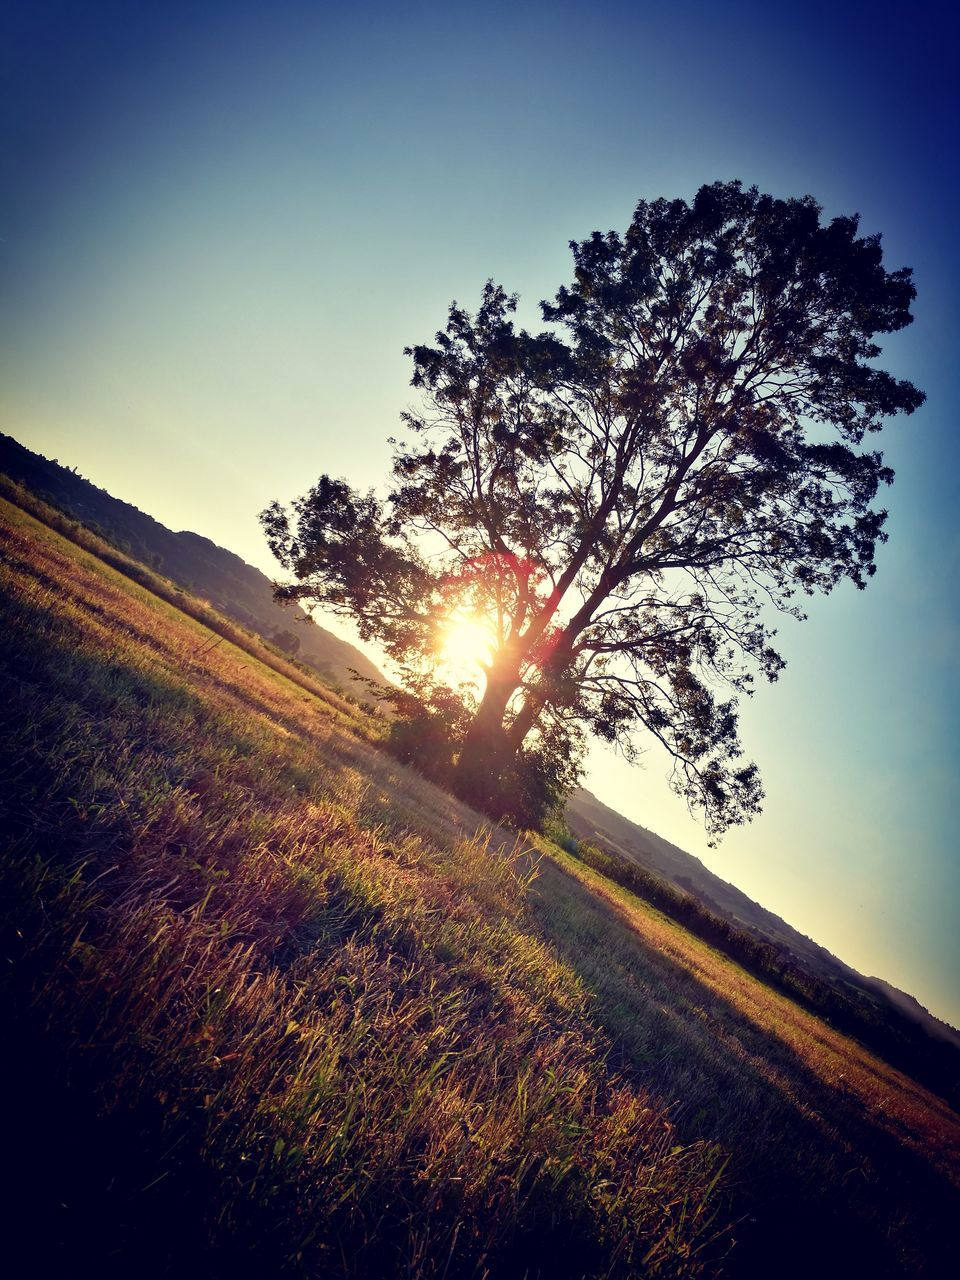 sun, sunbeam, nature, sunset, sunlight, lens flare, landscape, field, grass, tree, clear sky, tranquil scene, no people, beauty in nature, scenics, sunshine, growth, tranquility, outdoors, summer, sky, day